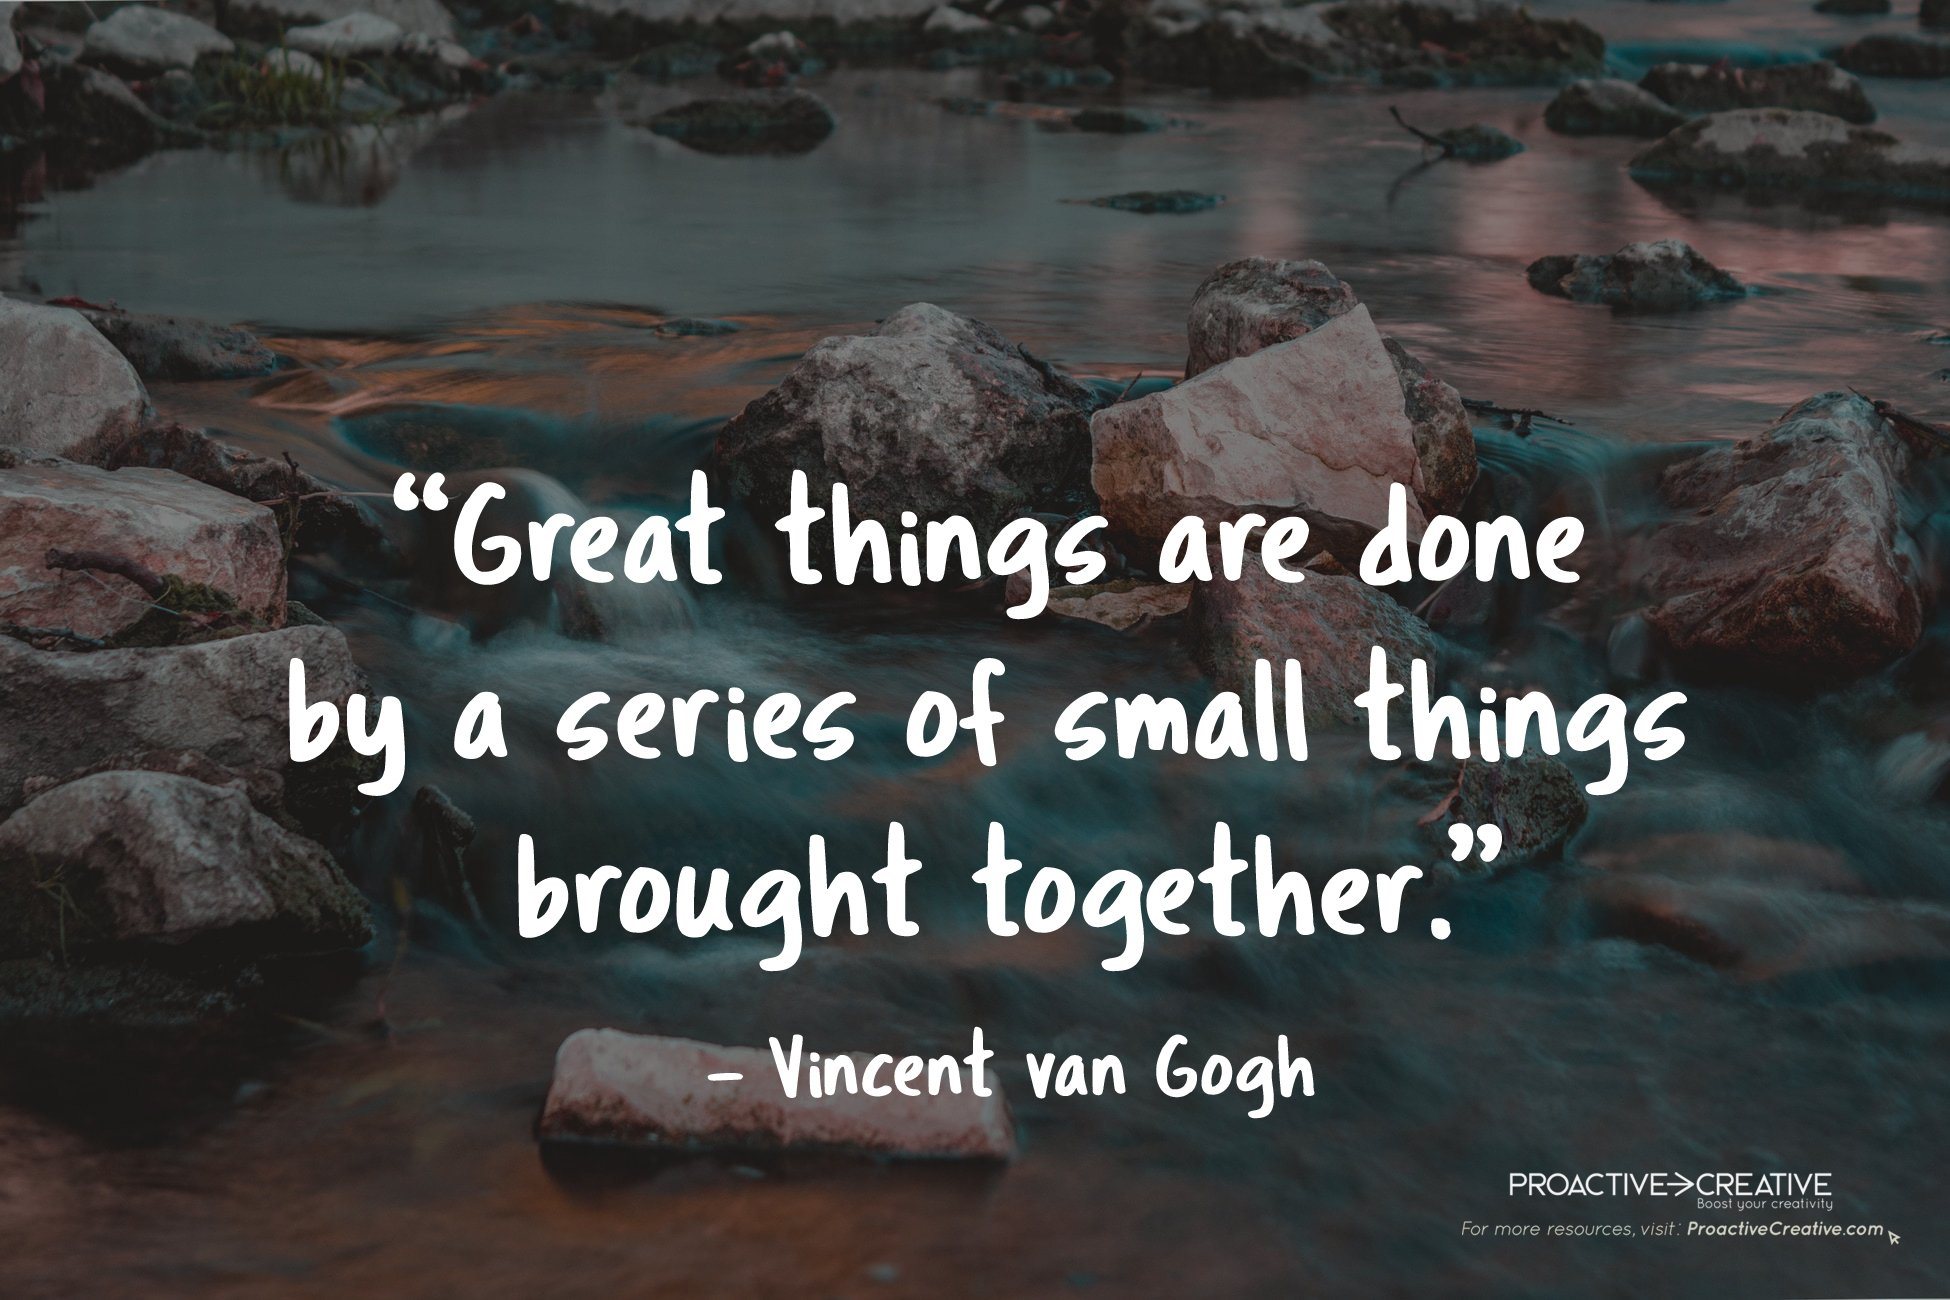 Creativity quote Vincent Van Gogh